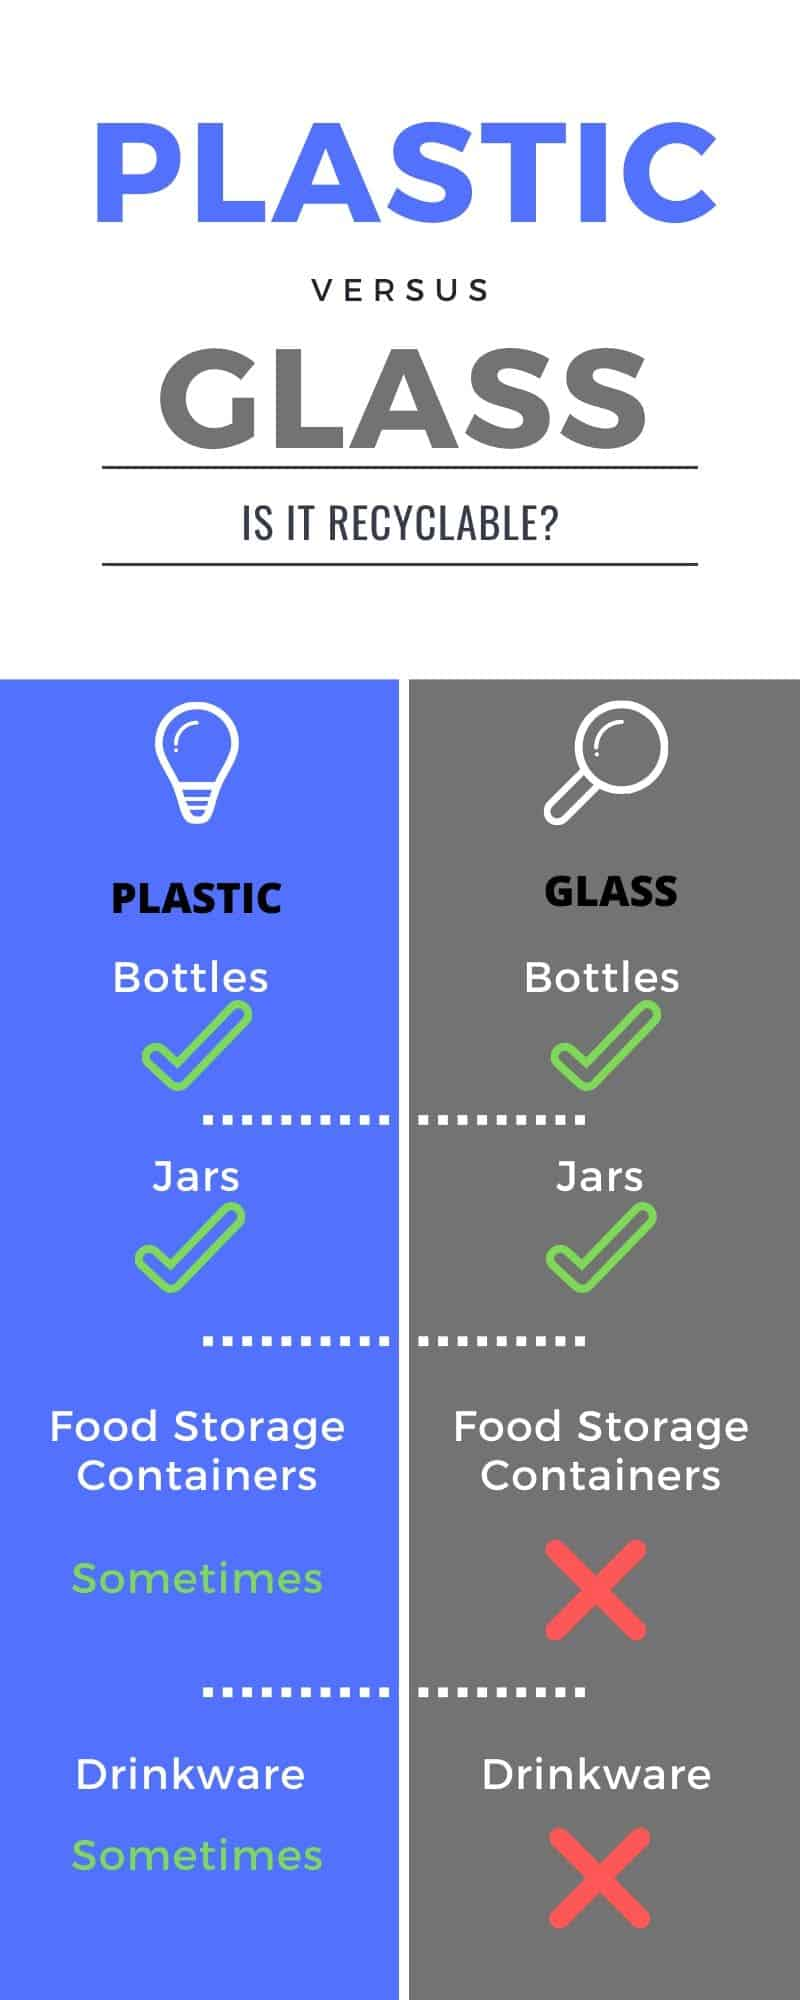 Infographic of recyclability of household plastic vs glass